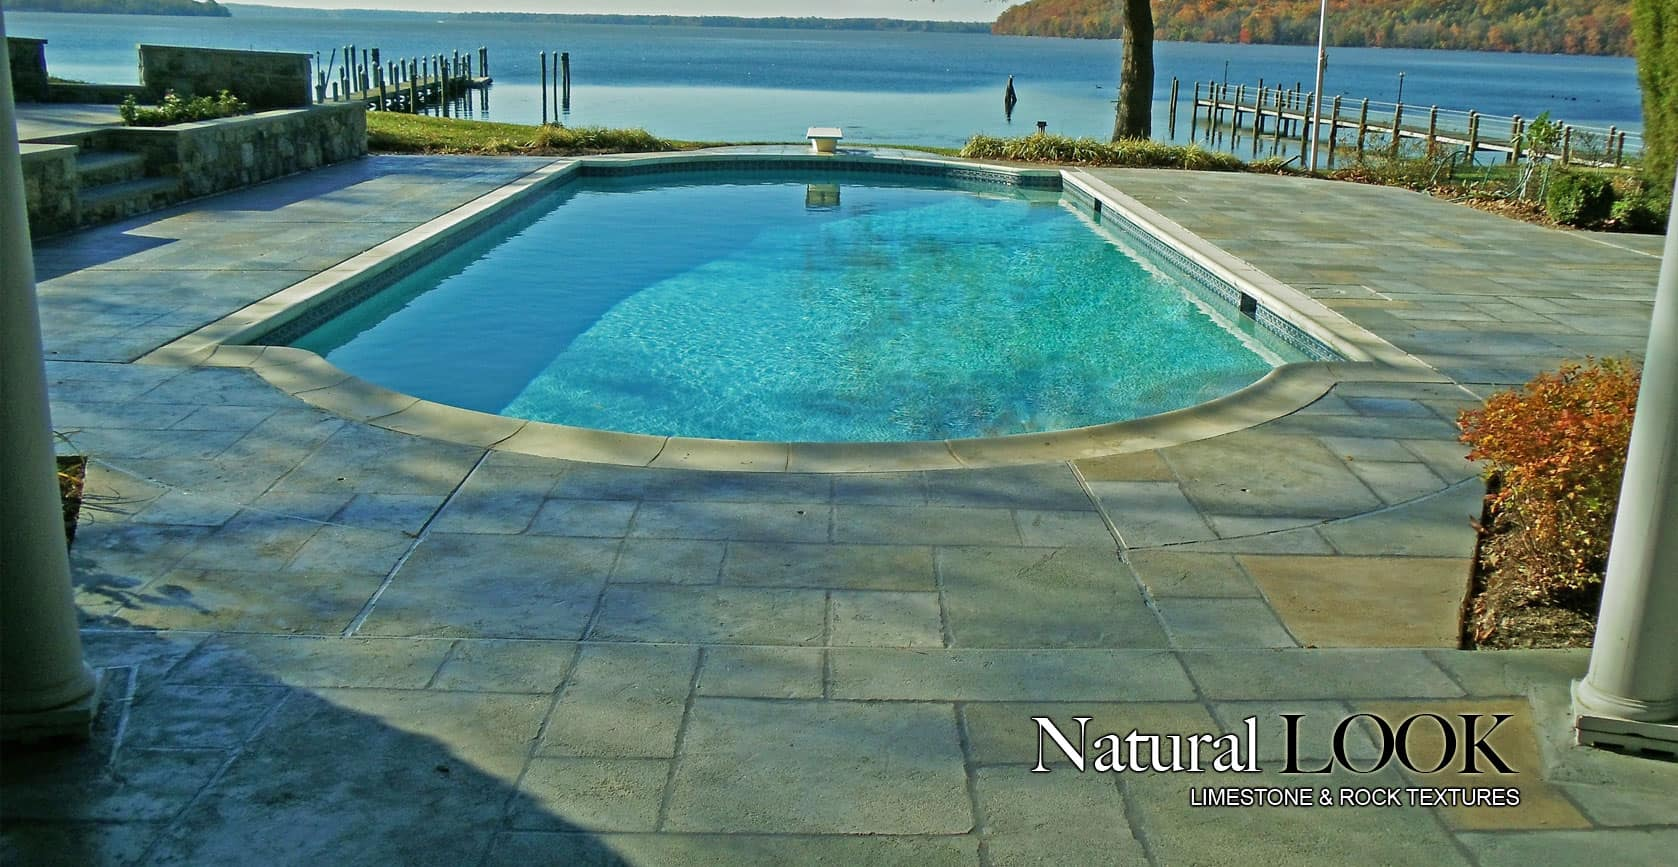 Concrete Pool Deck Finishes What Are The Best Options For Concrete Pool Deck Finishes